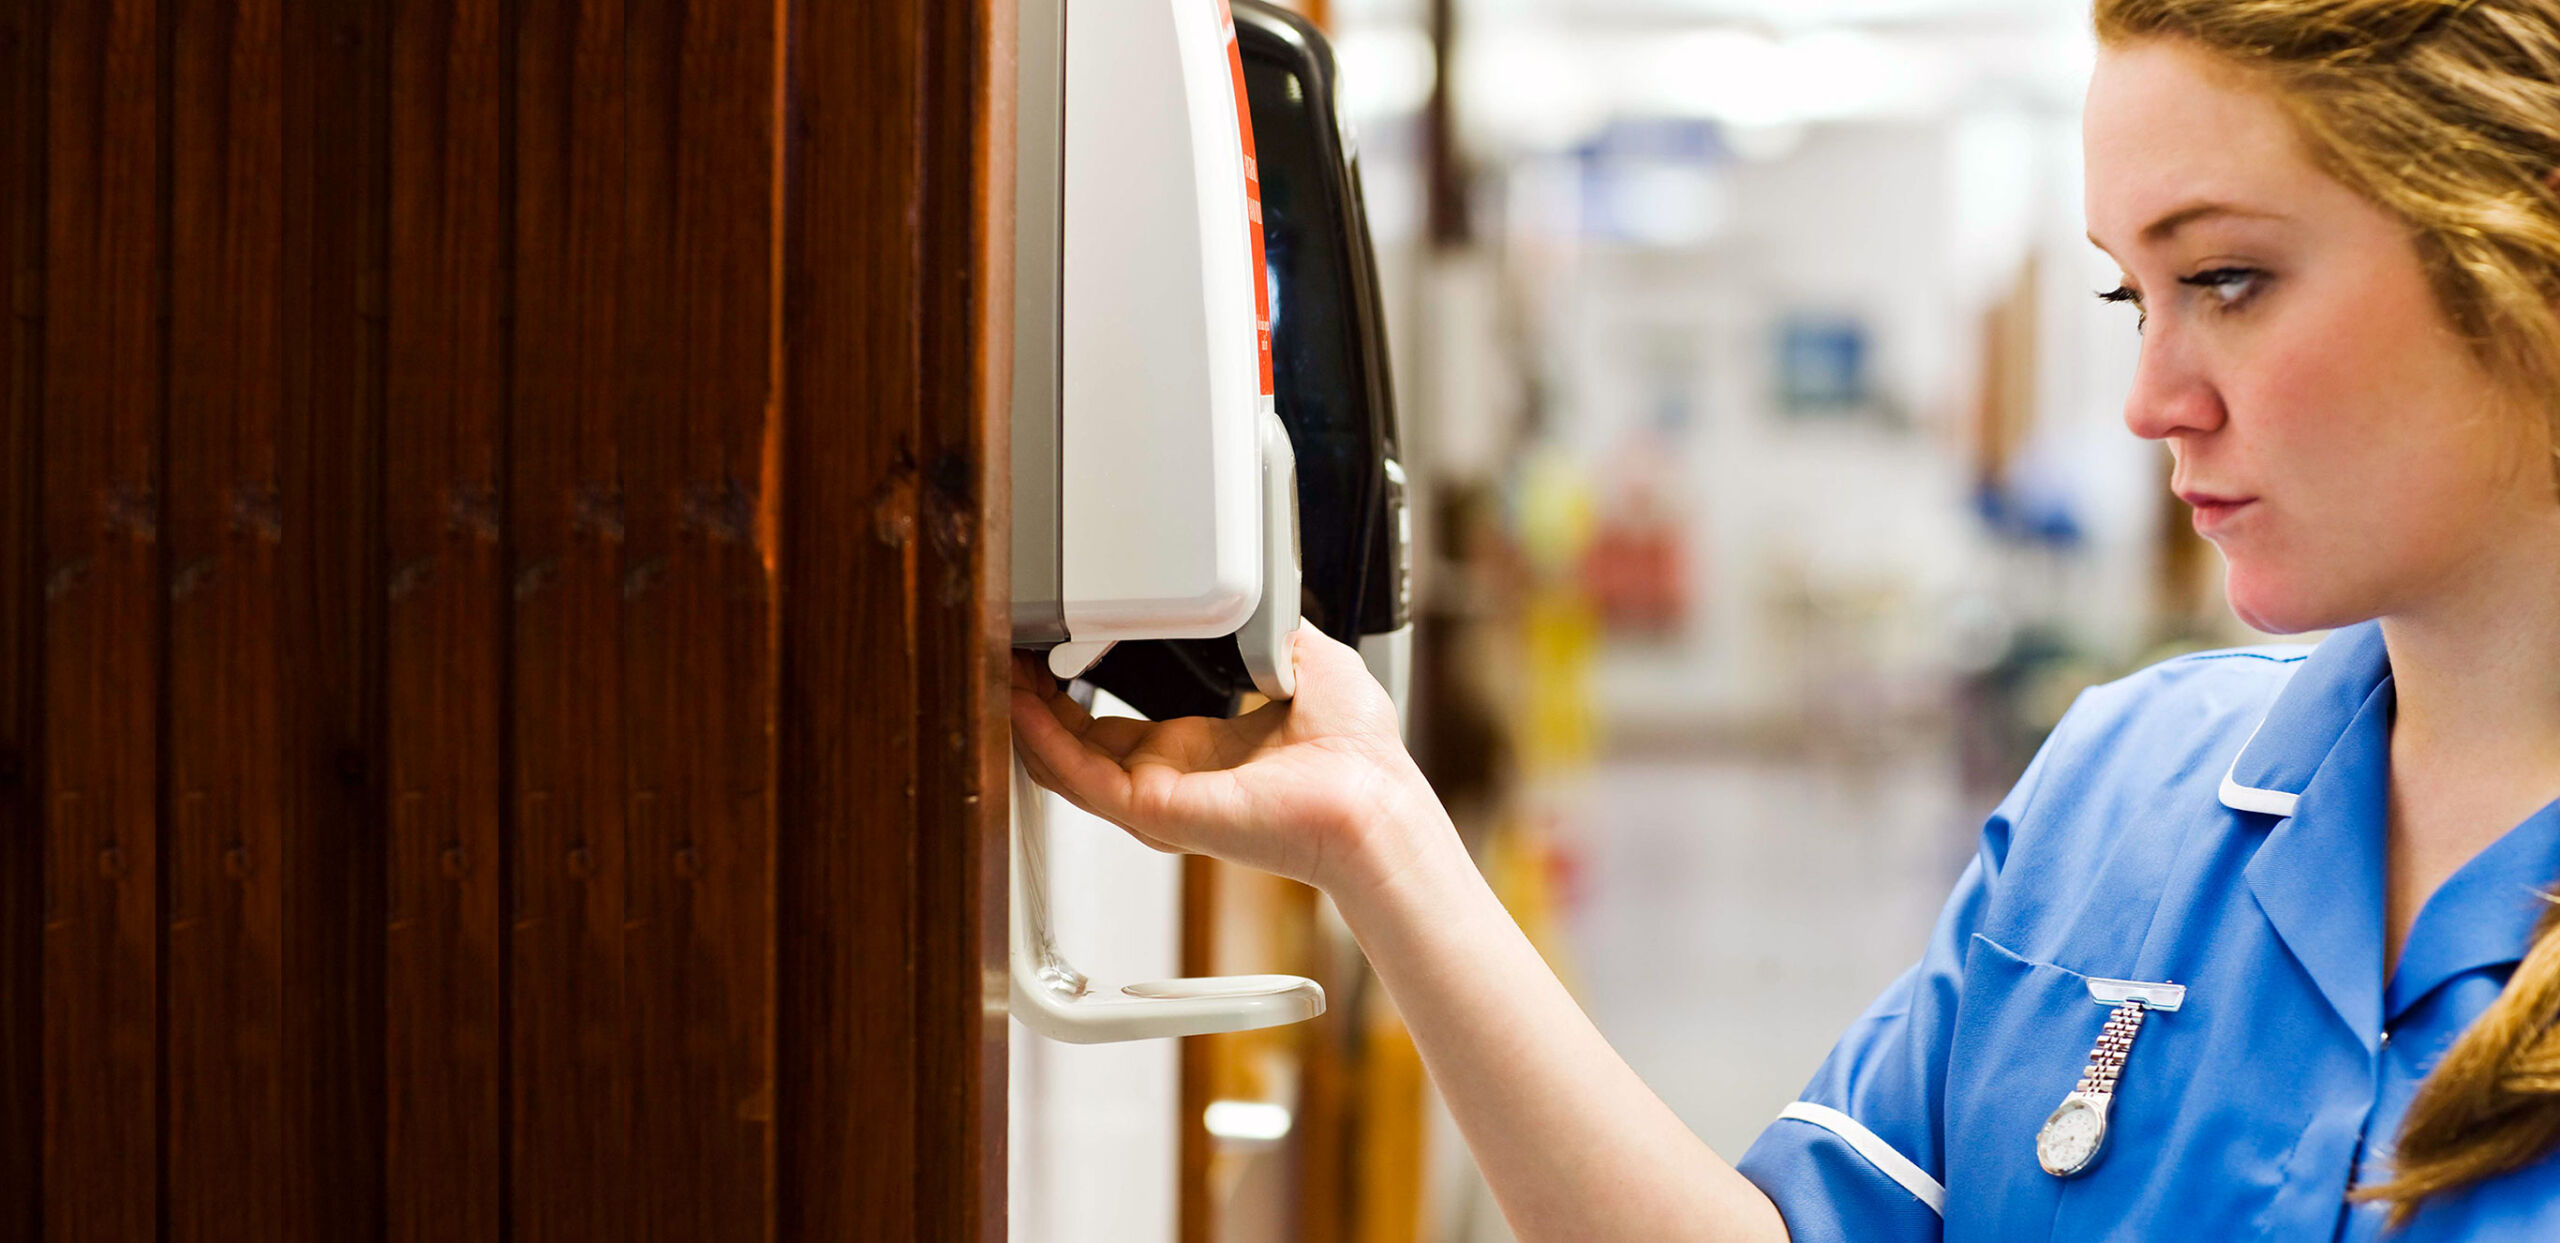 Nurse dispenses hand sanitizer from a wall-mounted dispenser, Cooley Dickinson Hospital, 30 Locust Street, Northampton, MA 01060.